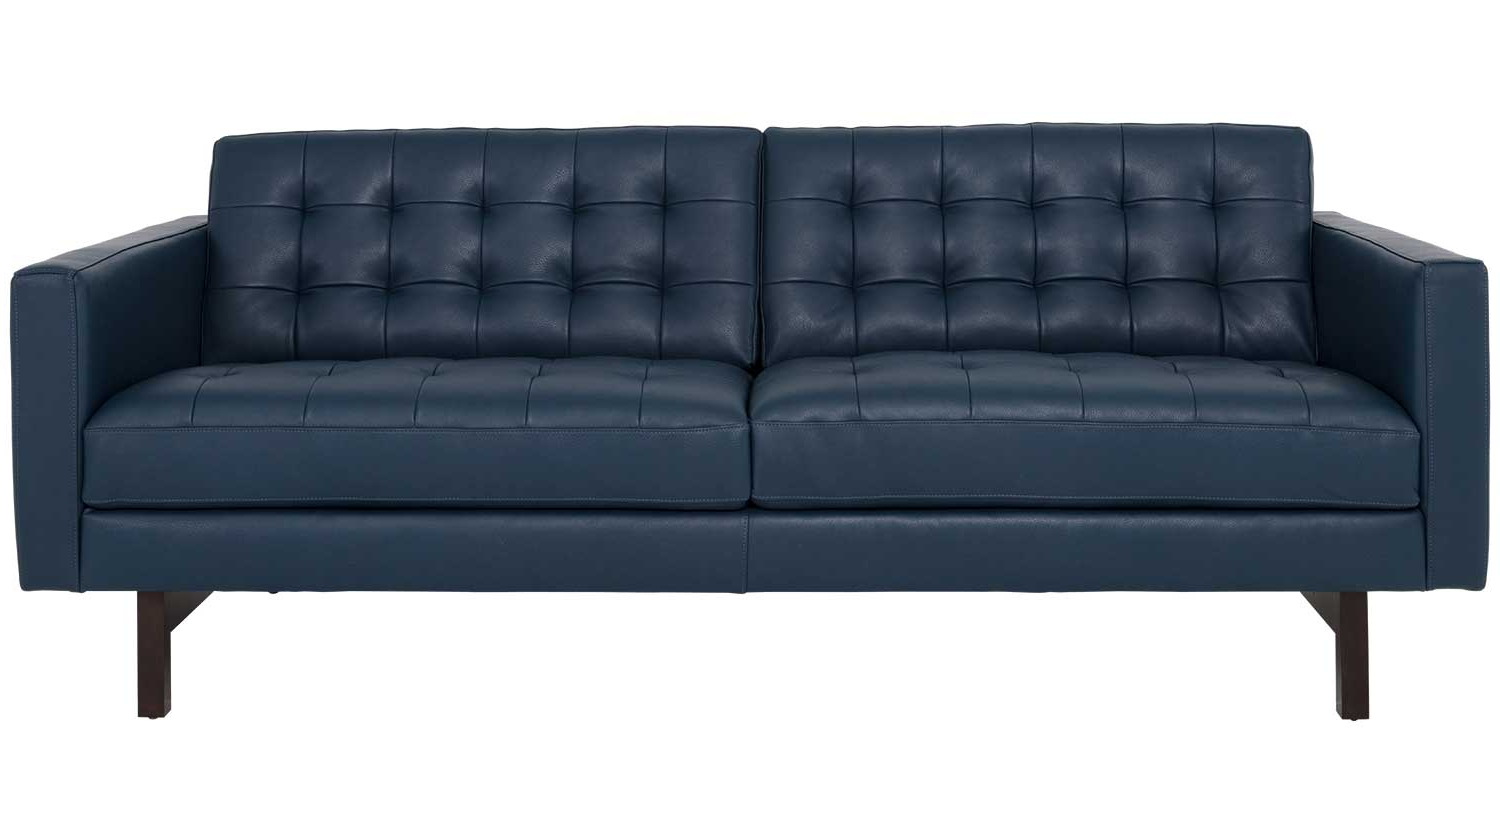 Designer Sofas Boston (View 7 of 20)